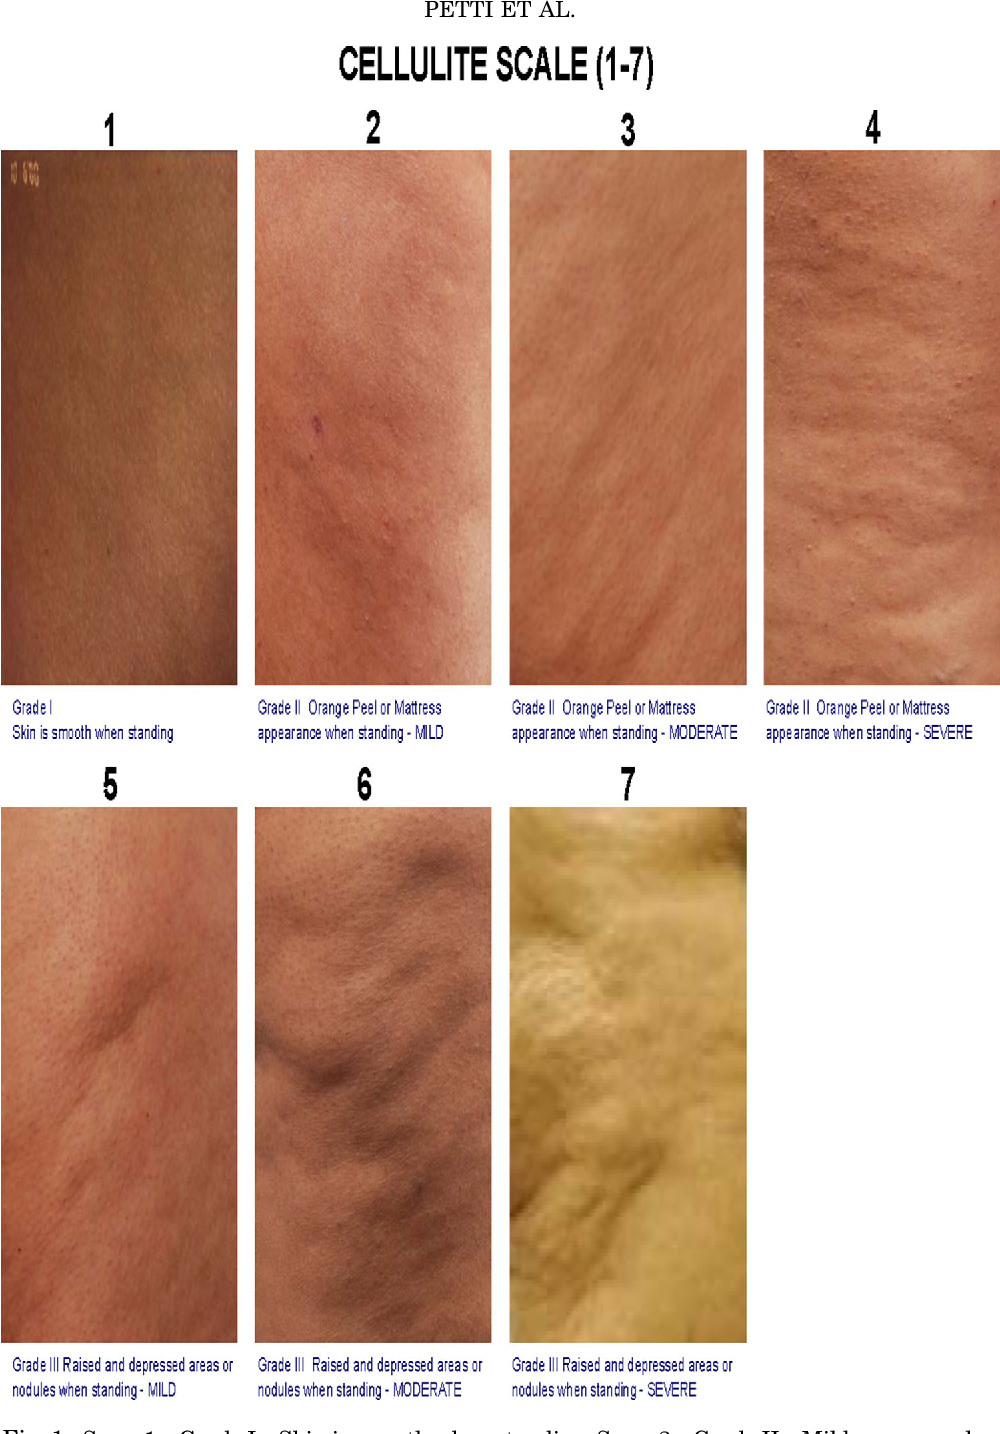 Figure 1 From Laser Cellulite Treatment And Laser Assisted Lipoplasty Of The Thighs And Buttocks Combined Modalities For Single Stage Contouring Of The Lower Body Semantic Scholar